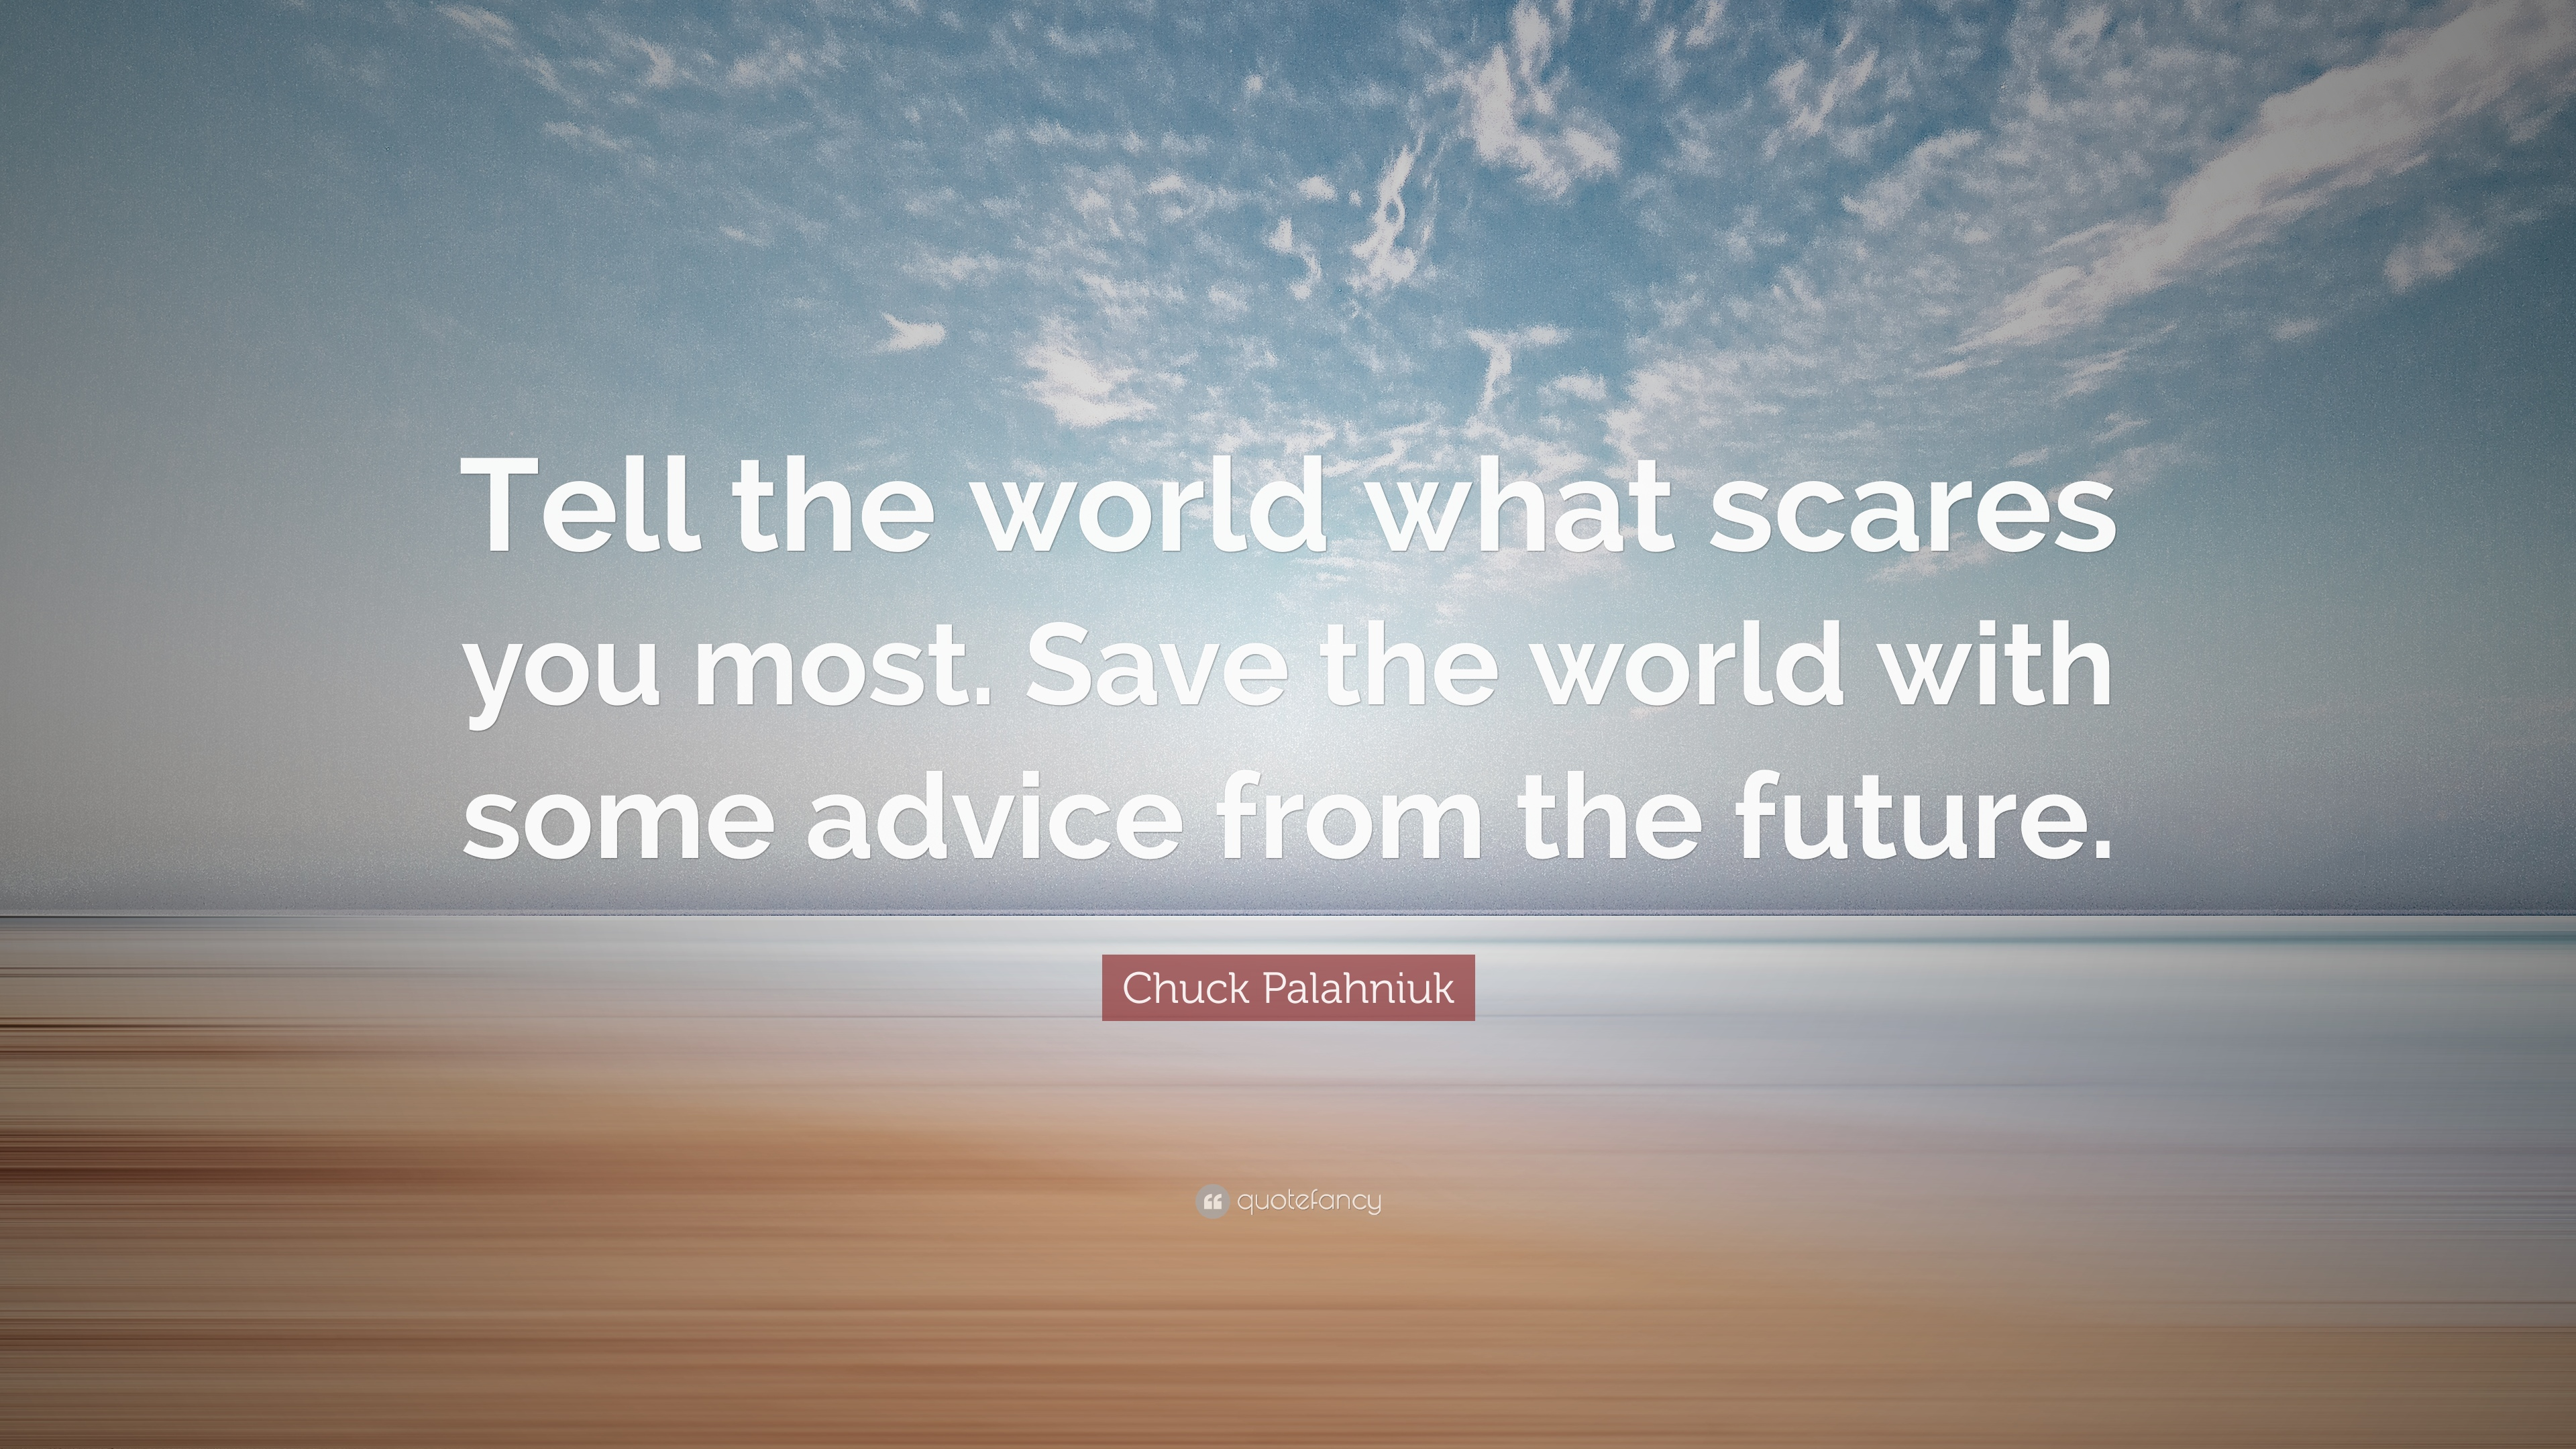 10. Talking about the future scares you forecast